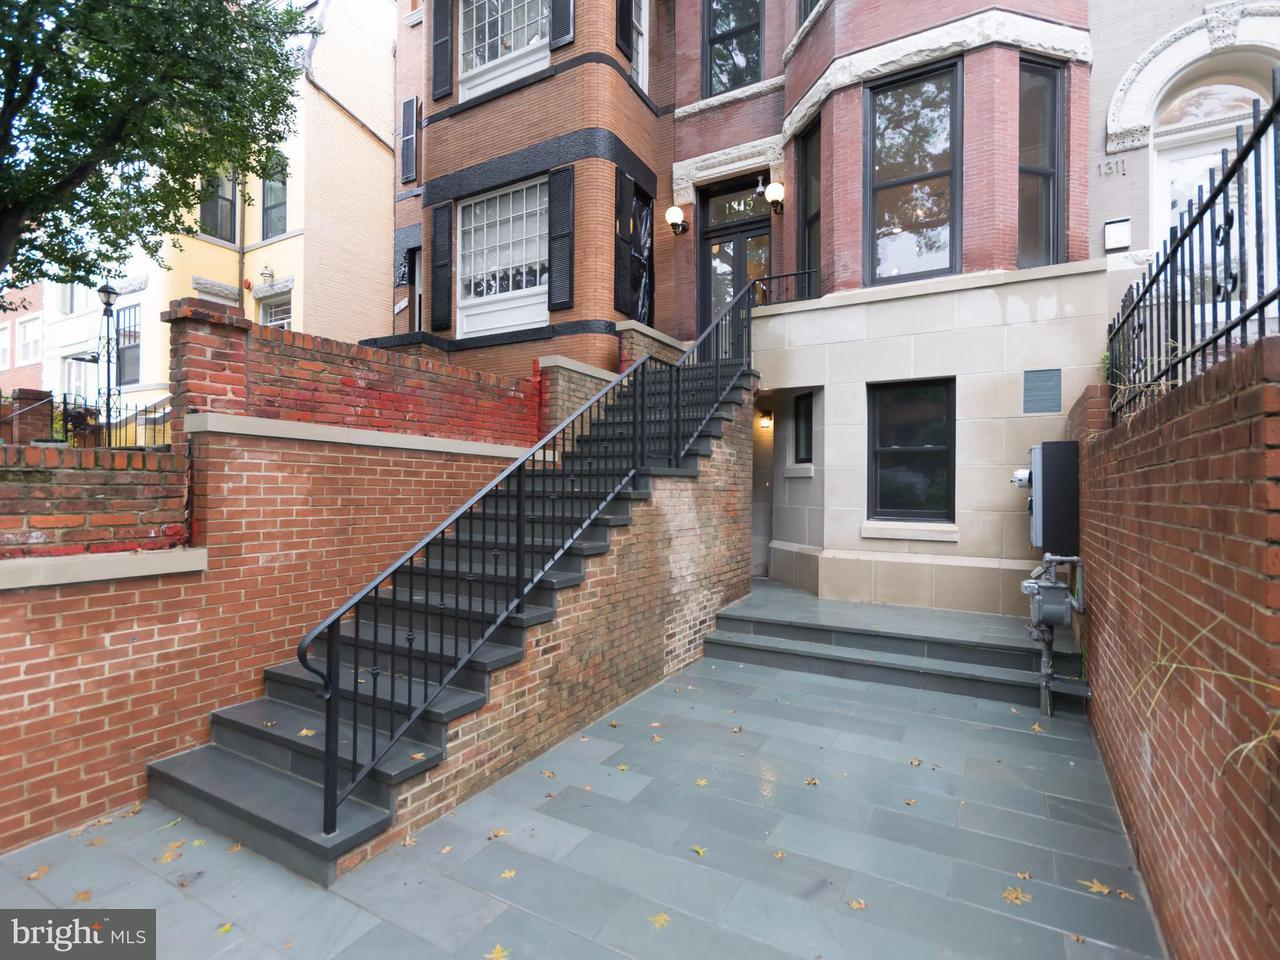 Other Residential for Rent at 1315 Euclid St NW ##b Washington, District Of Columbia 20009 United States